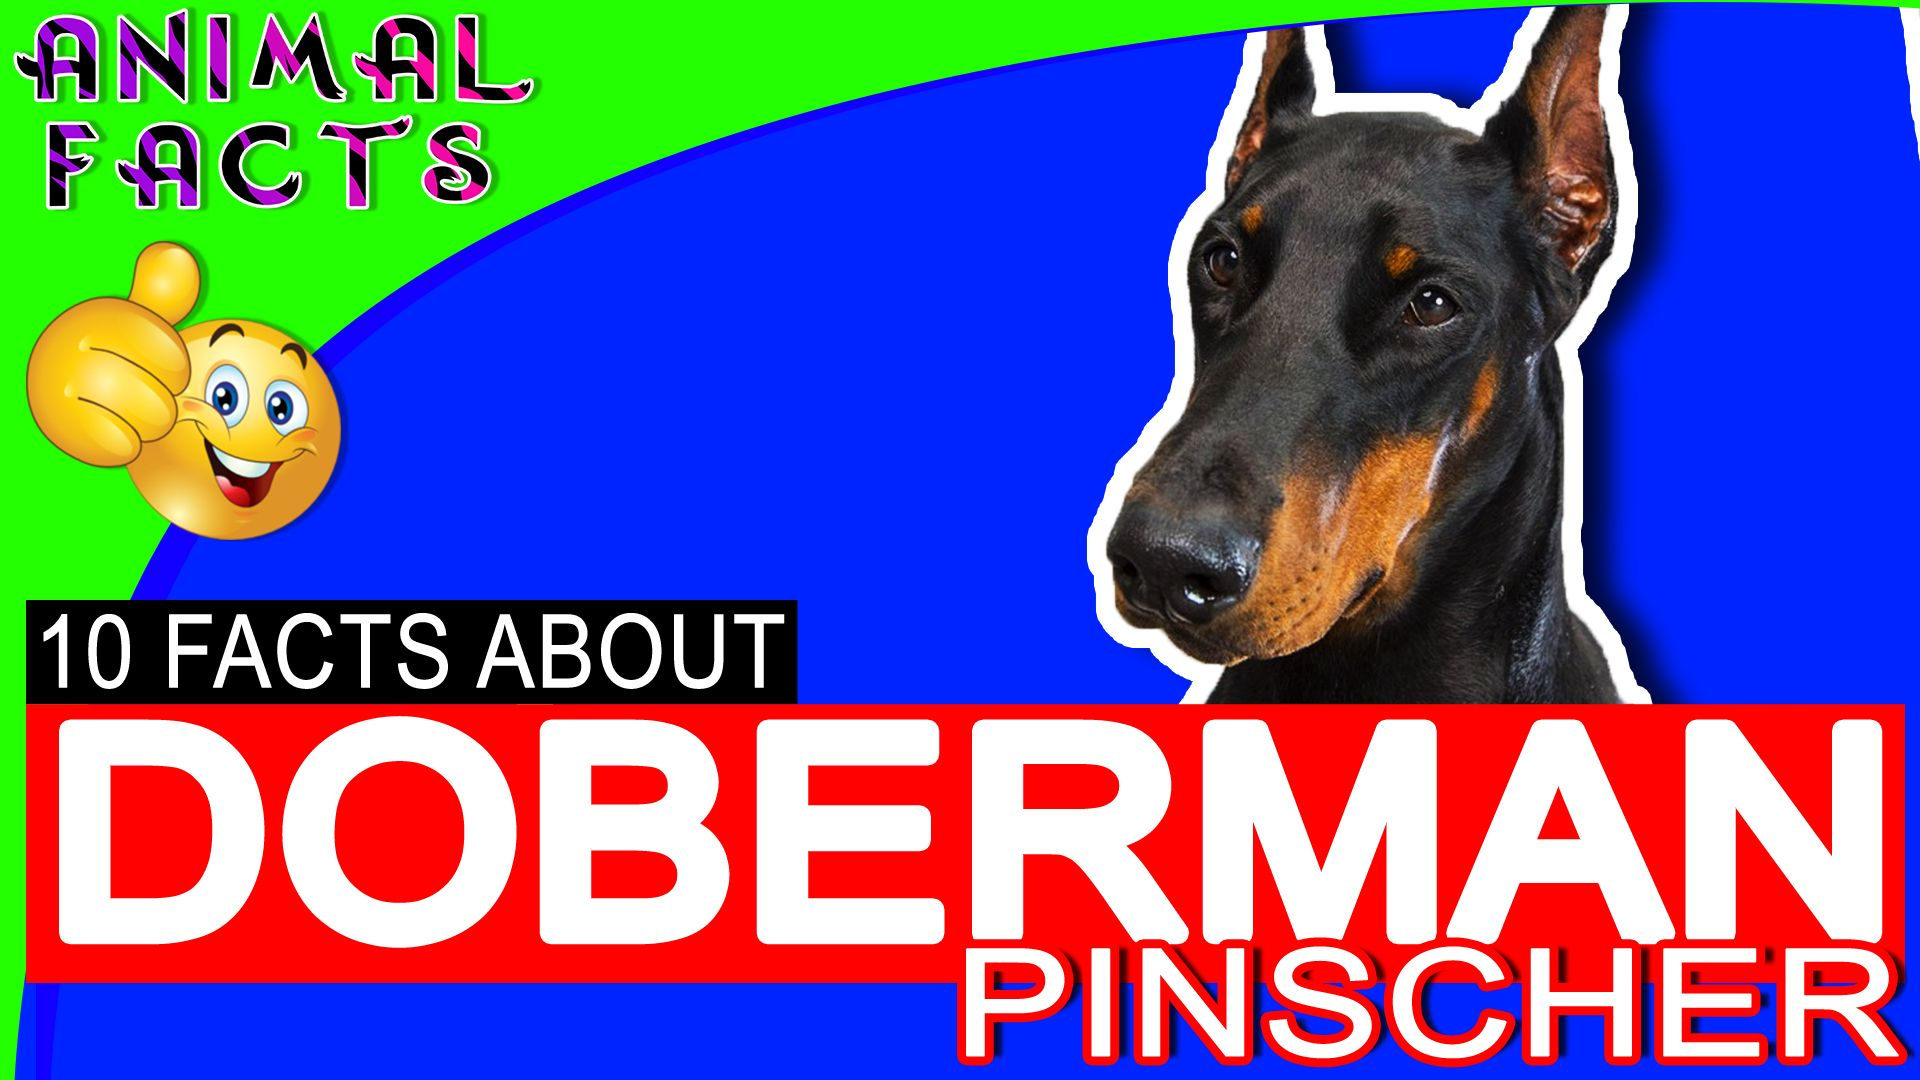 Doberman Pinscher Dogs 101 Interesting Facts And Information Dog